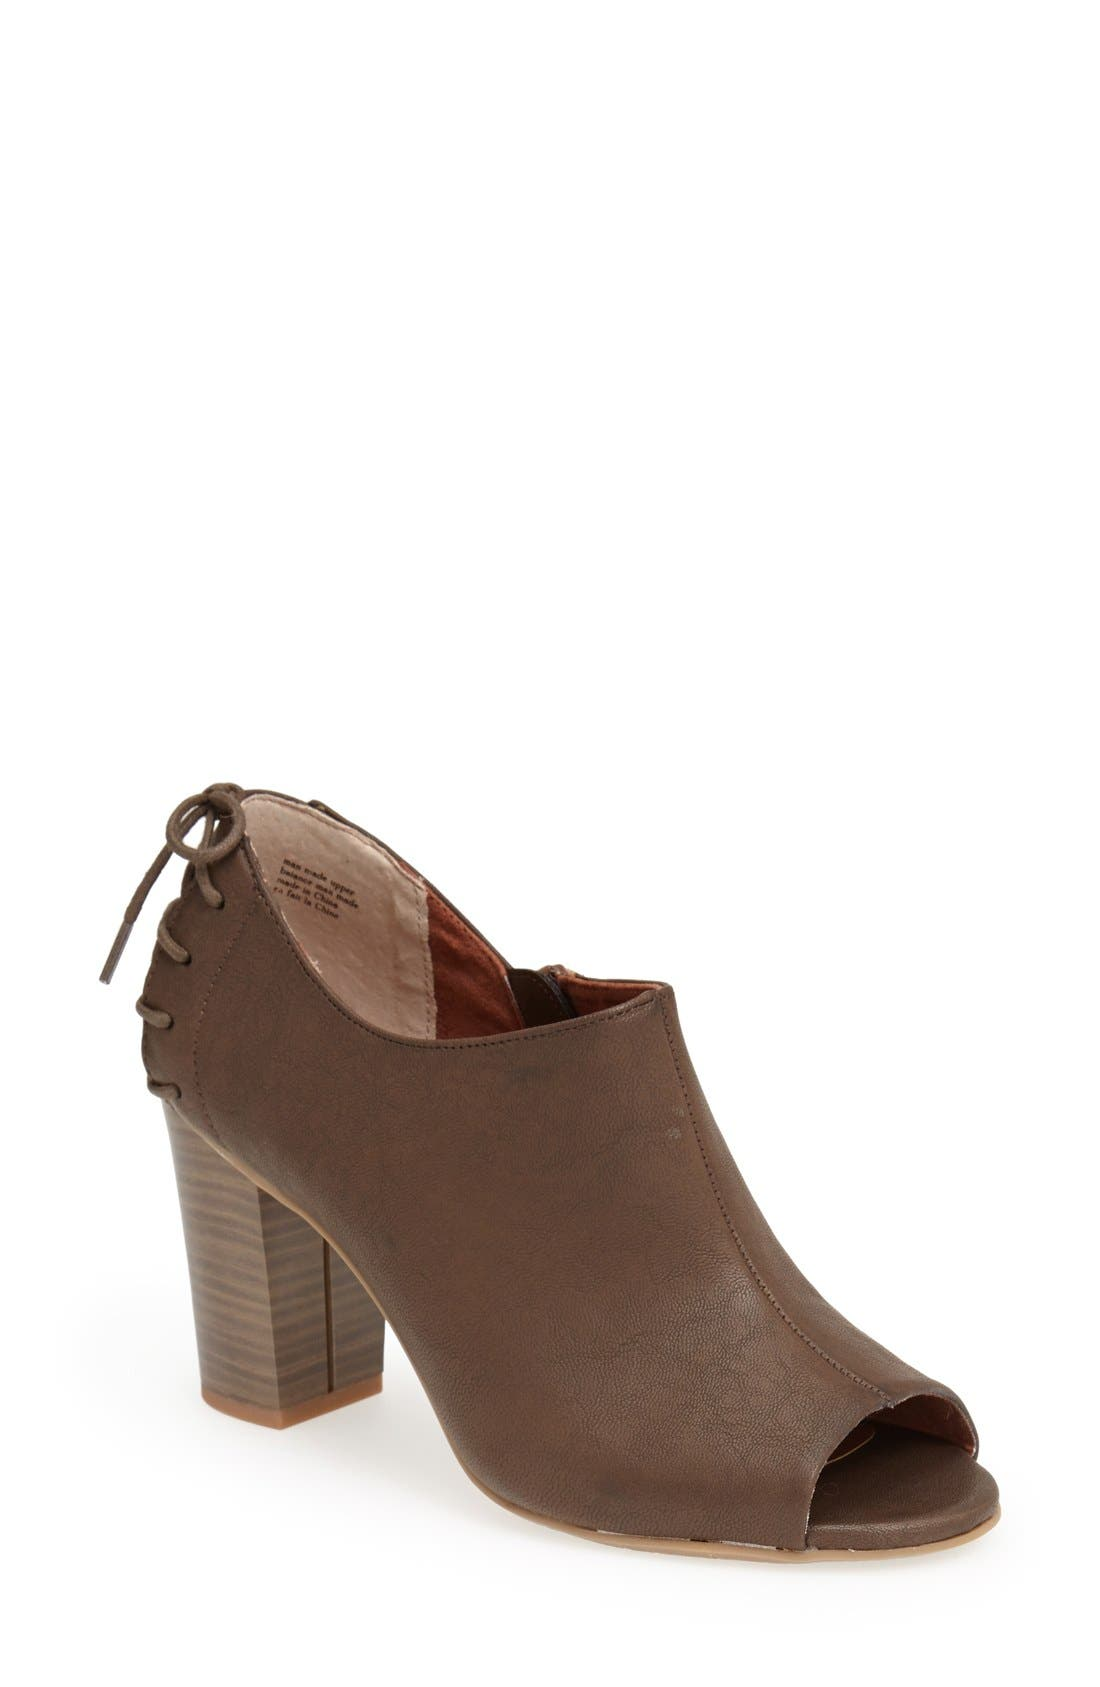 Alternate Image 1 Selected - BC Footwear 'Picture It' Bootie (Women)